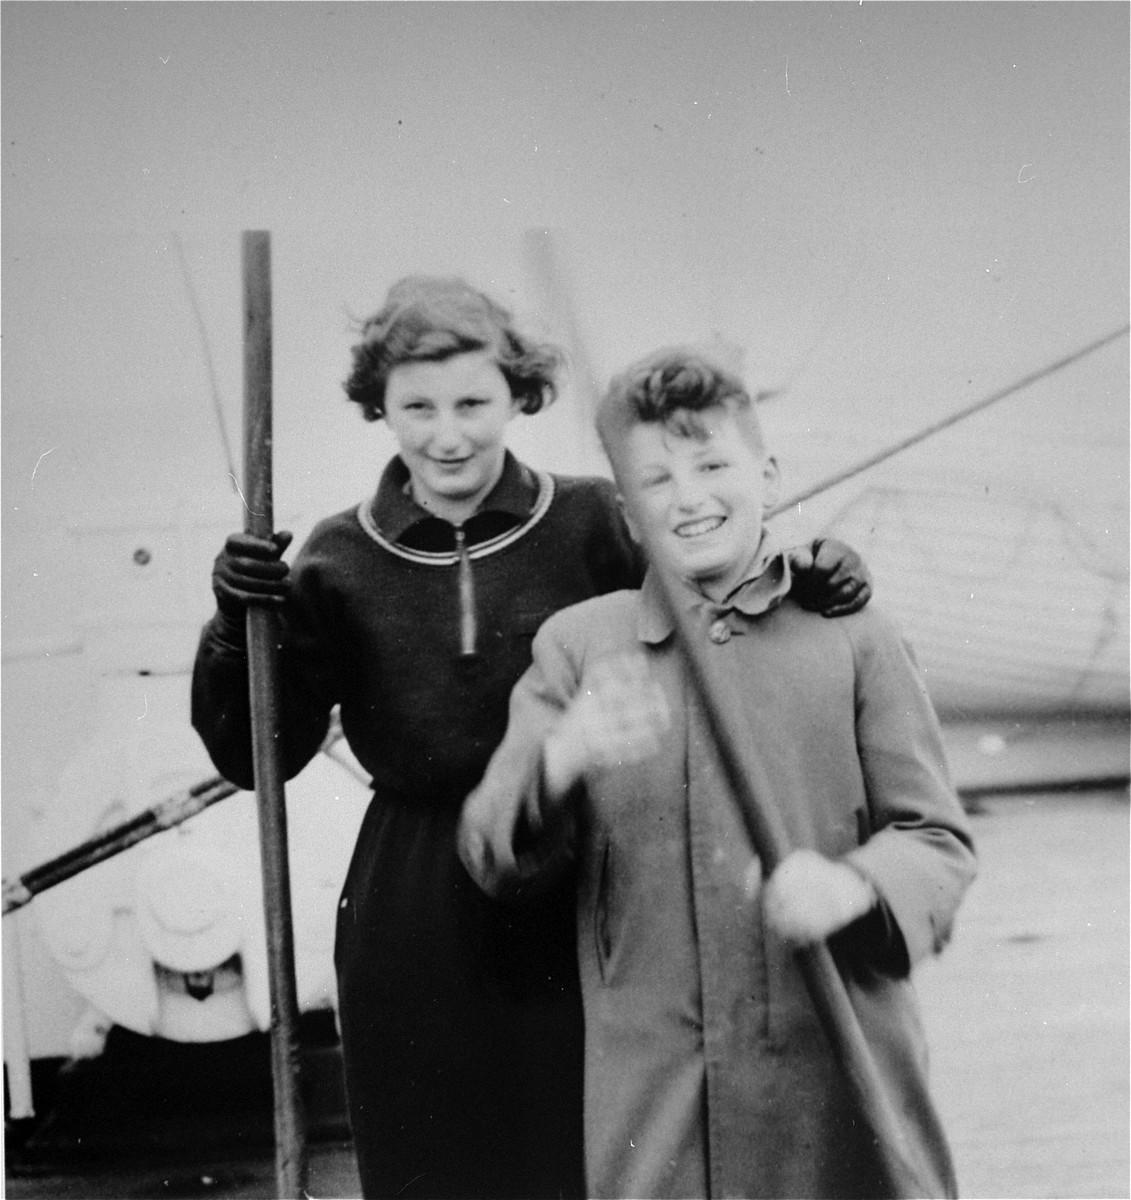 Two Jewish refugee siblings from Vienna pose on board the SS Pennland of the Holland-America Line, while en route to the U.S.  Pictured are Peter and Eva Kollisch.